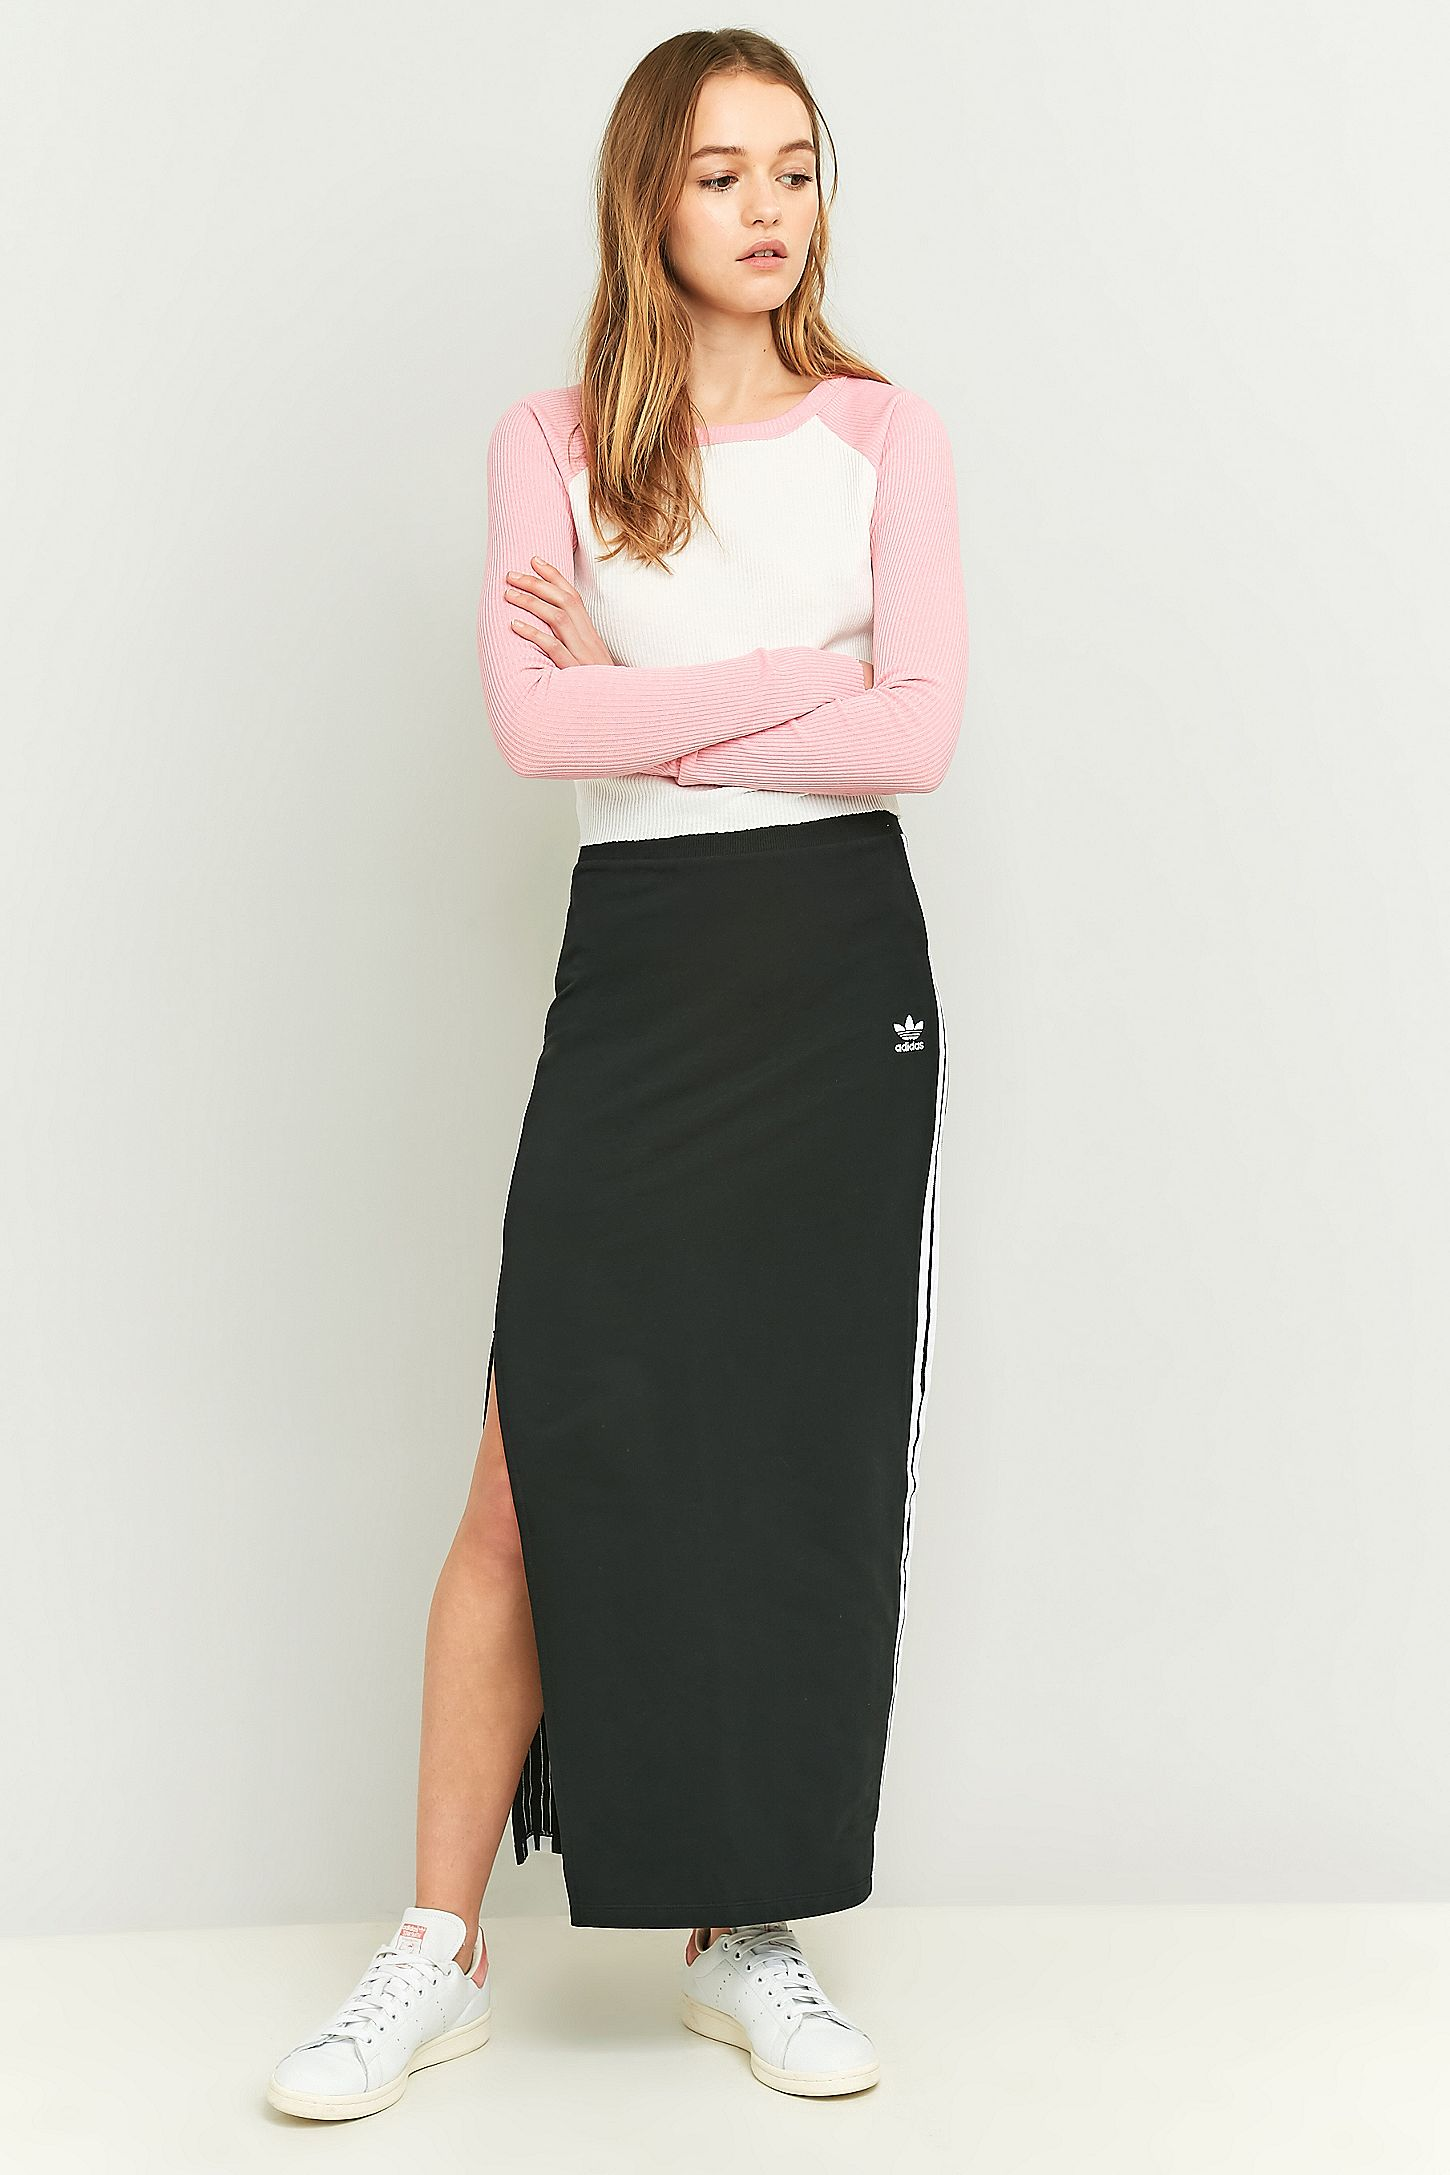 36a0989c33b adidas Originals 3 Stripe Black Maxi Skirt. Click on image to zoom. Hover  to zoom. Double Tap to Zoom